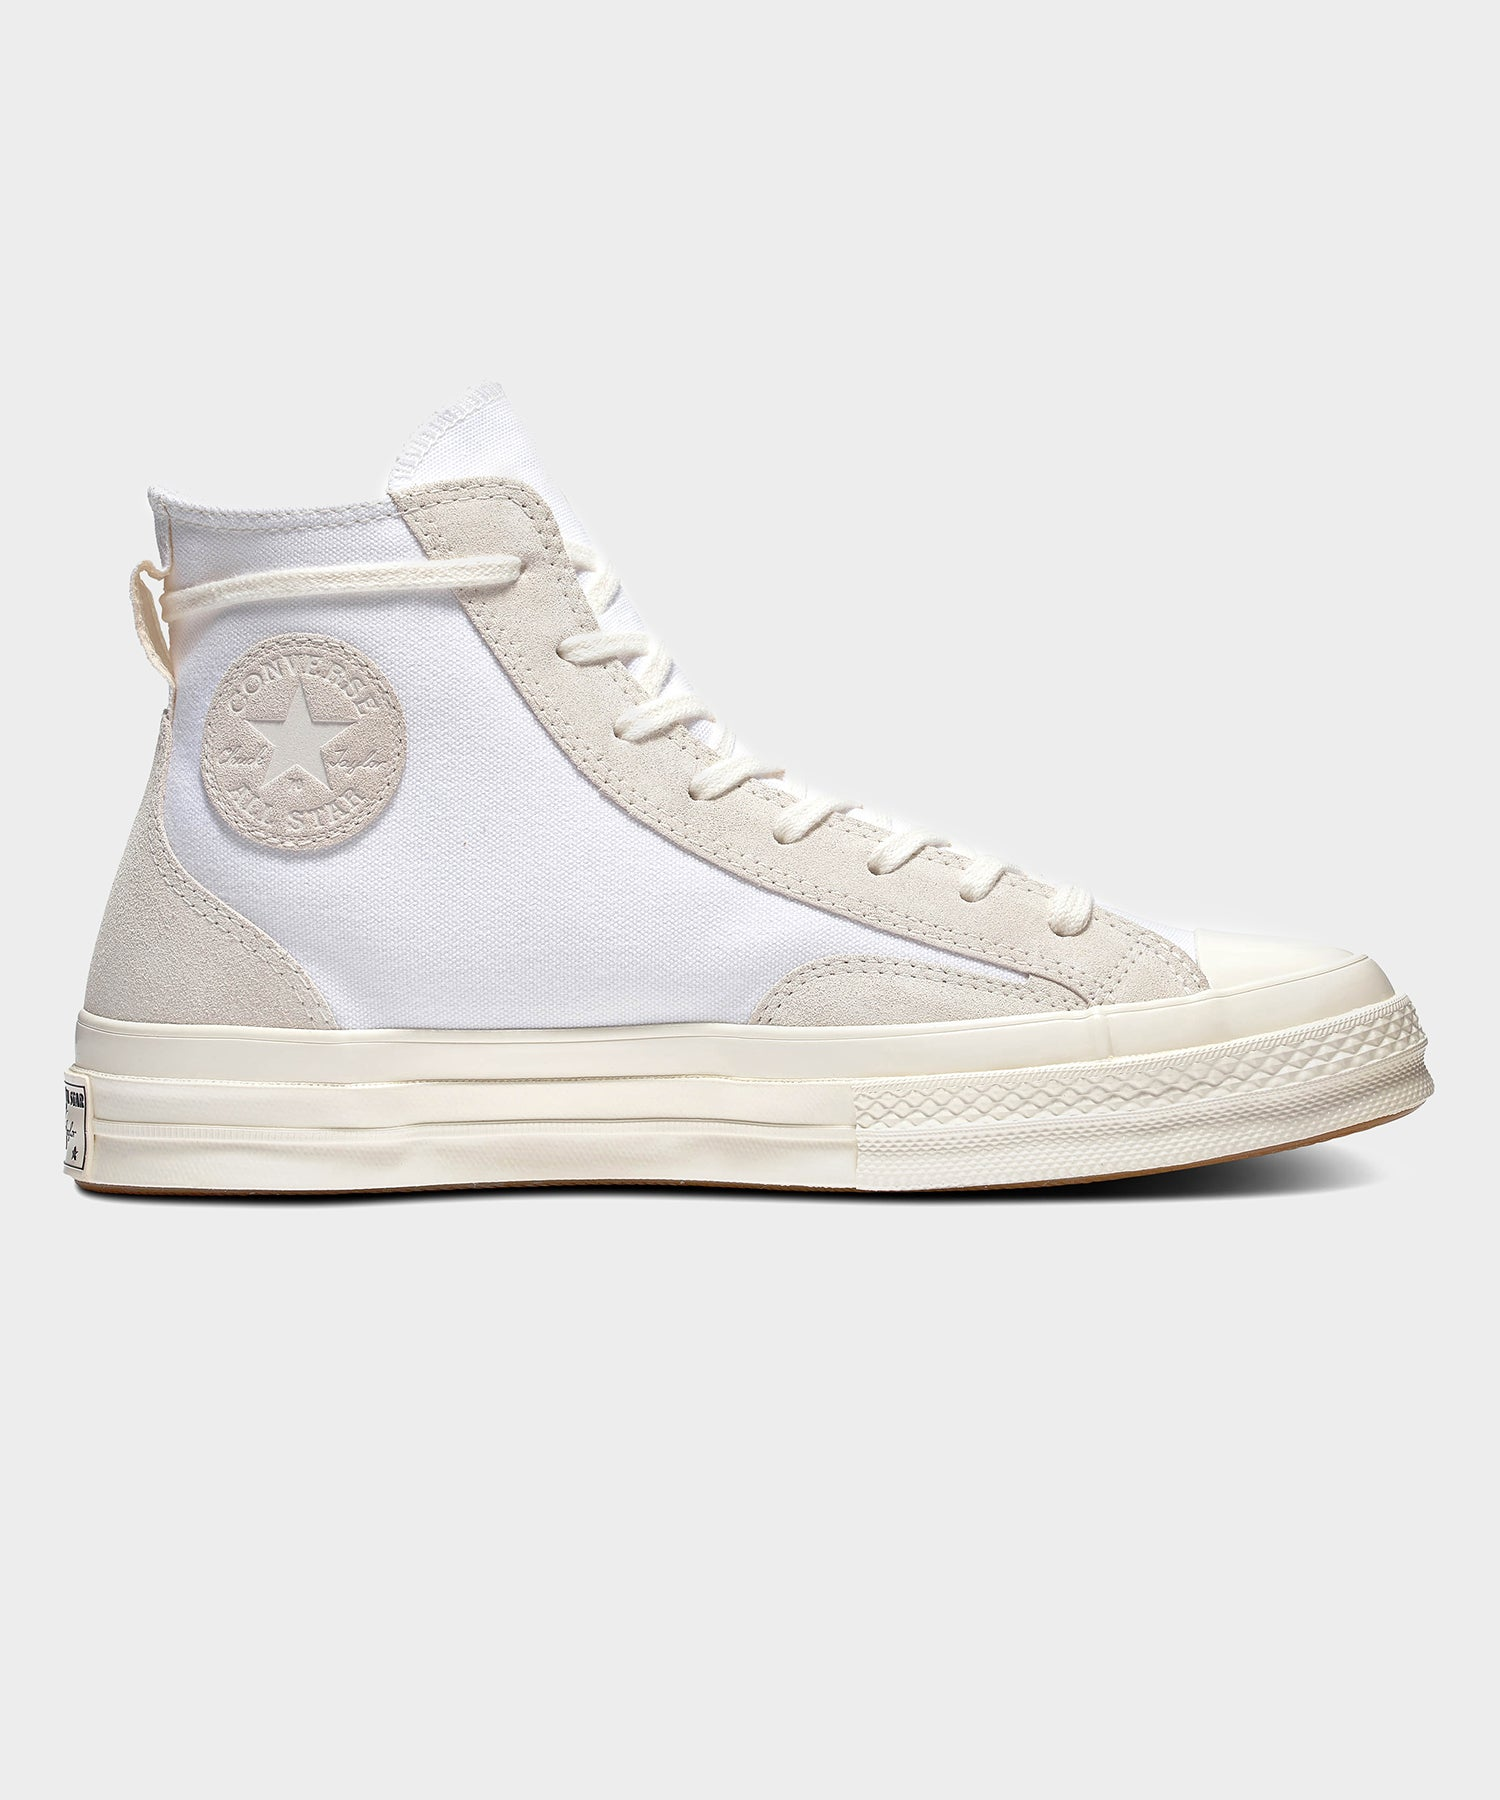 Converse Final Club Chuck 70 in White